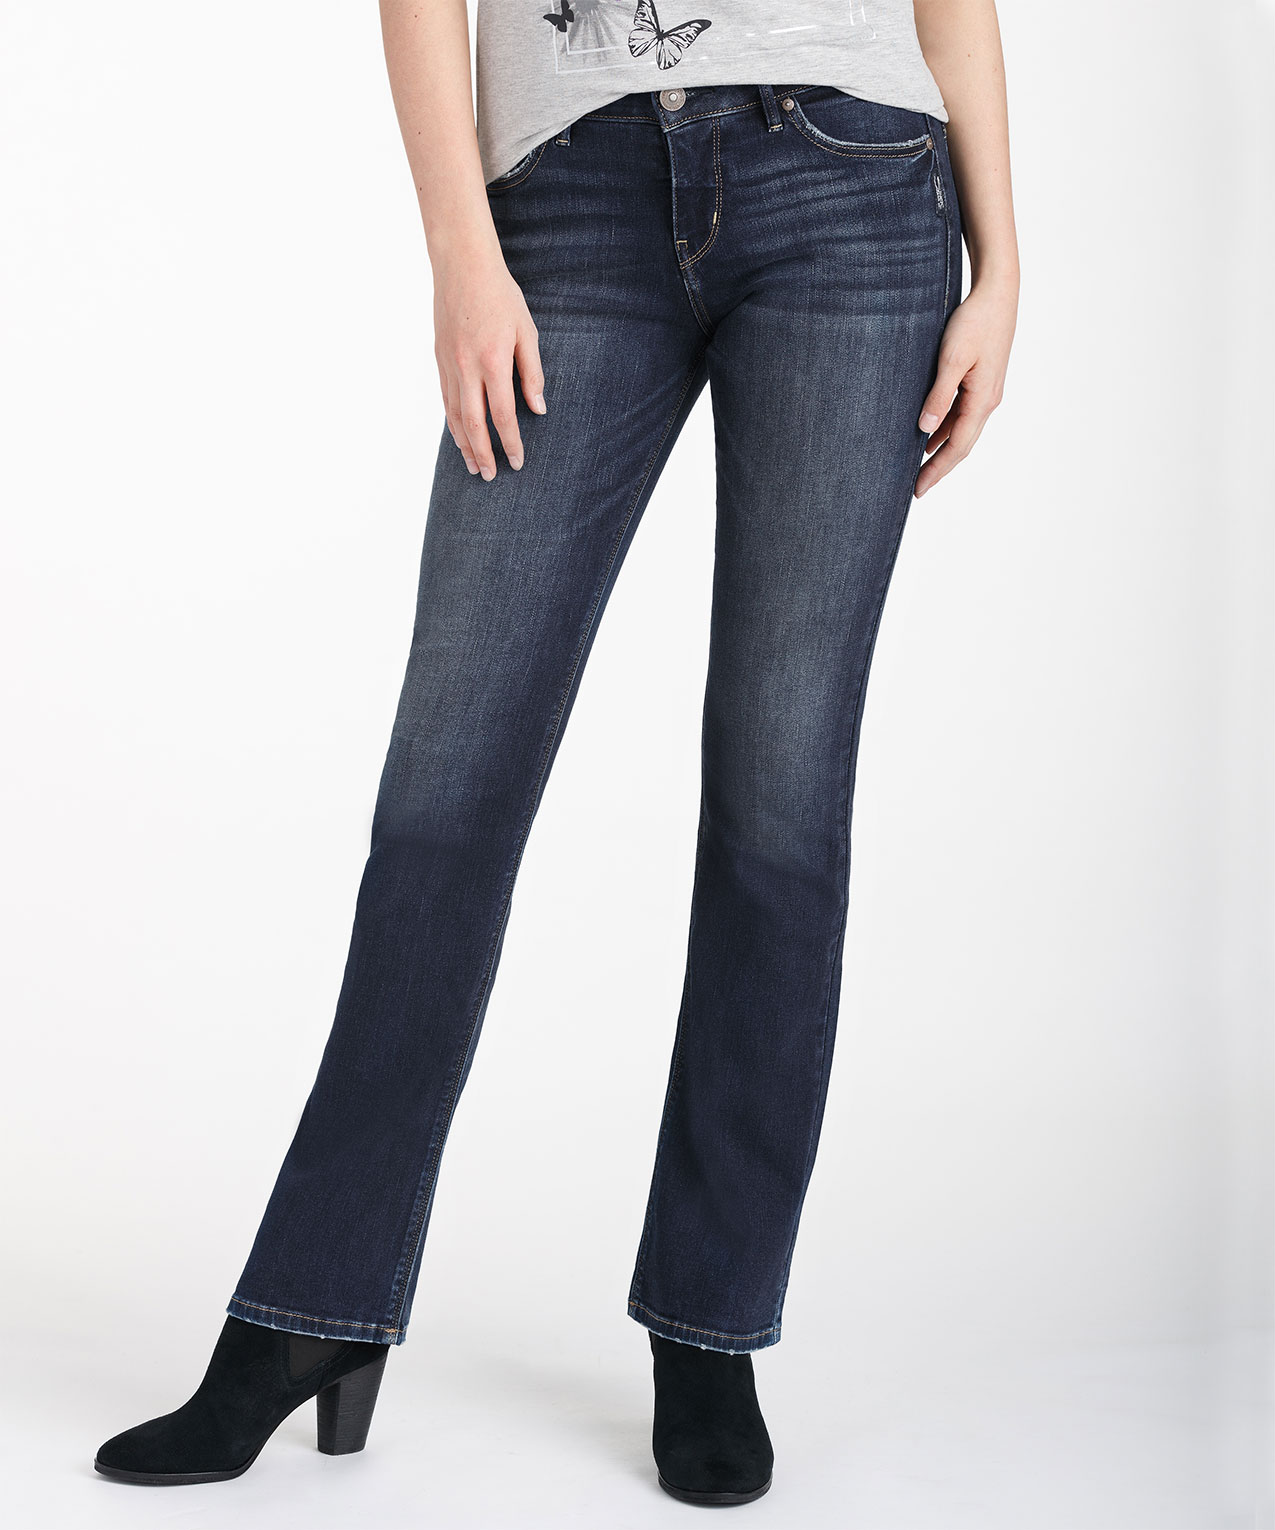 13ddc27d Silver Jeans Co. Avery Slim Bootcut Jean, Dark Wash, hi-res